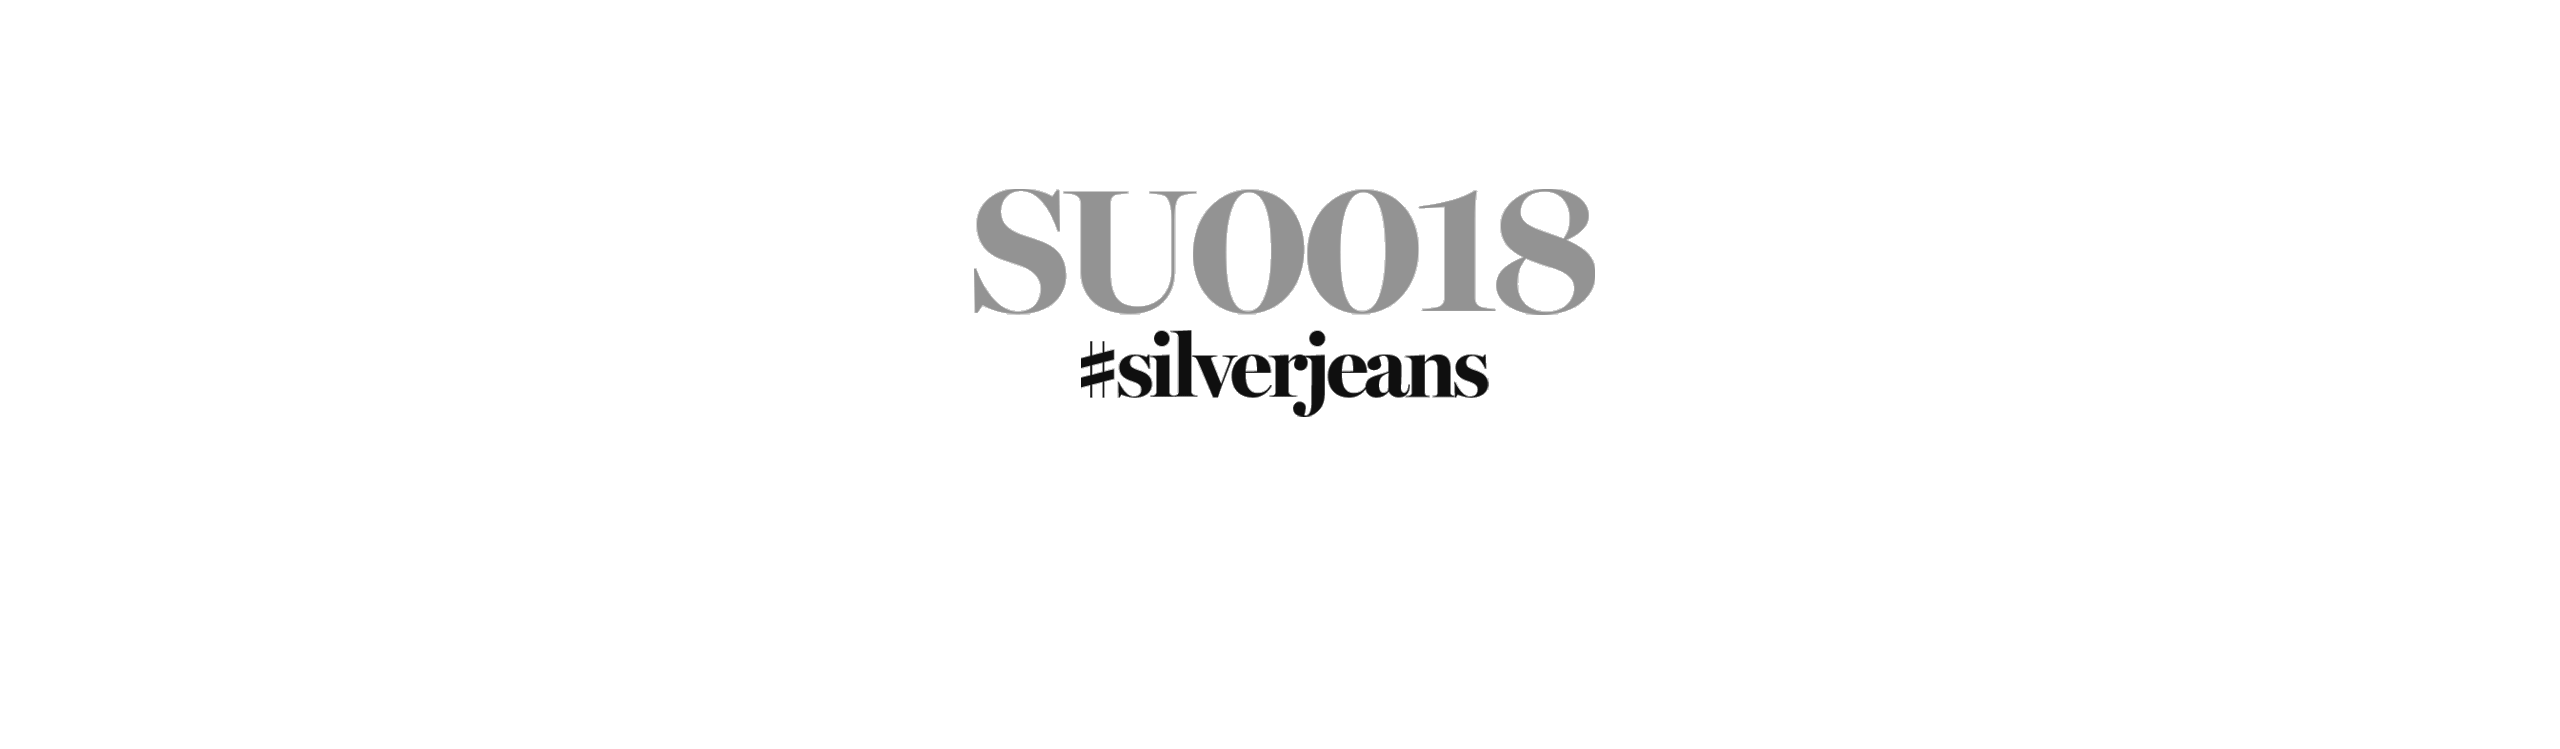 Silver Jeans Co. - SU0018 - #silverjeans - Tag your favorite fits for a chance to be featured on our feed. - @silverjeansco